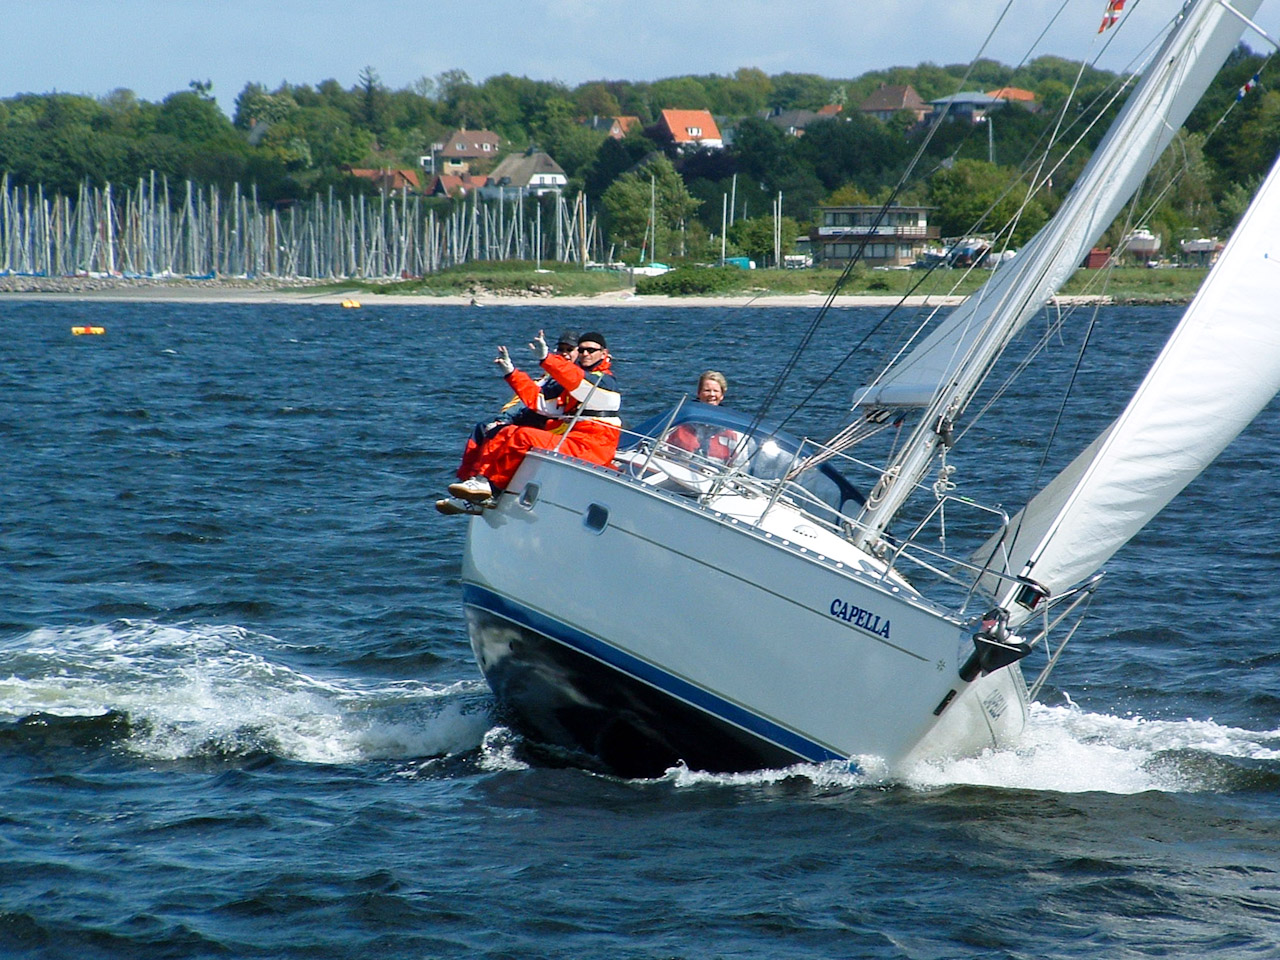 Baltic-cup-13